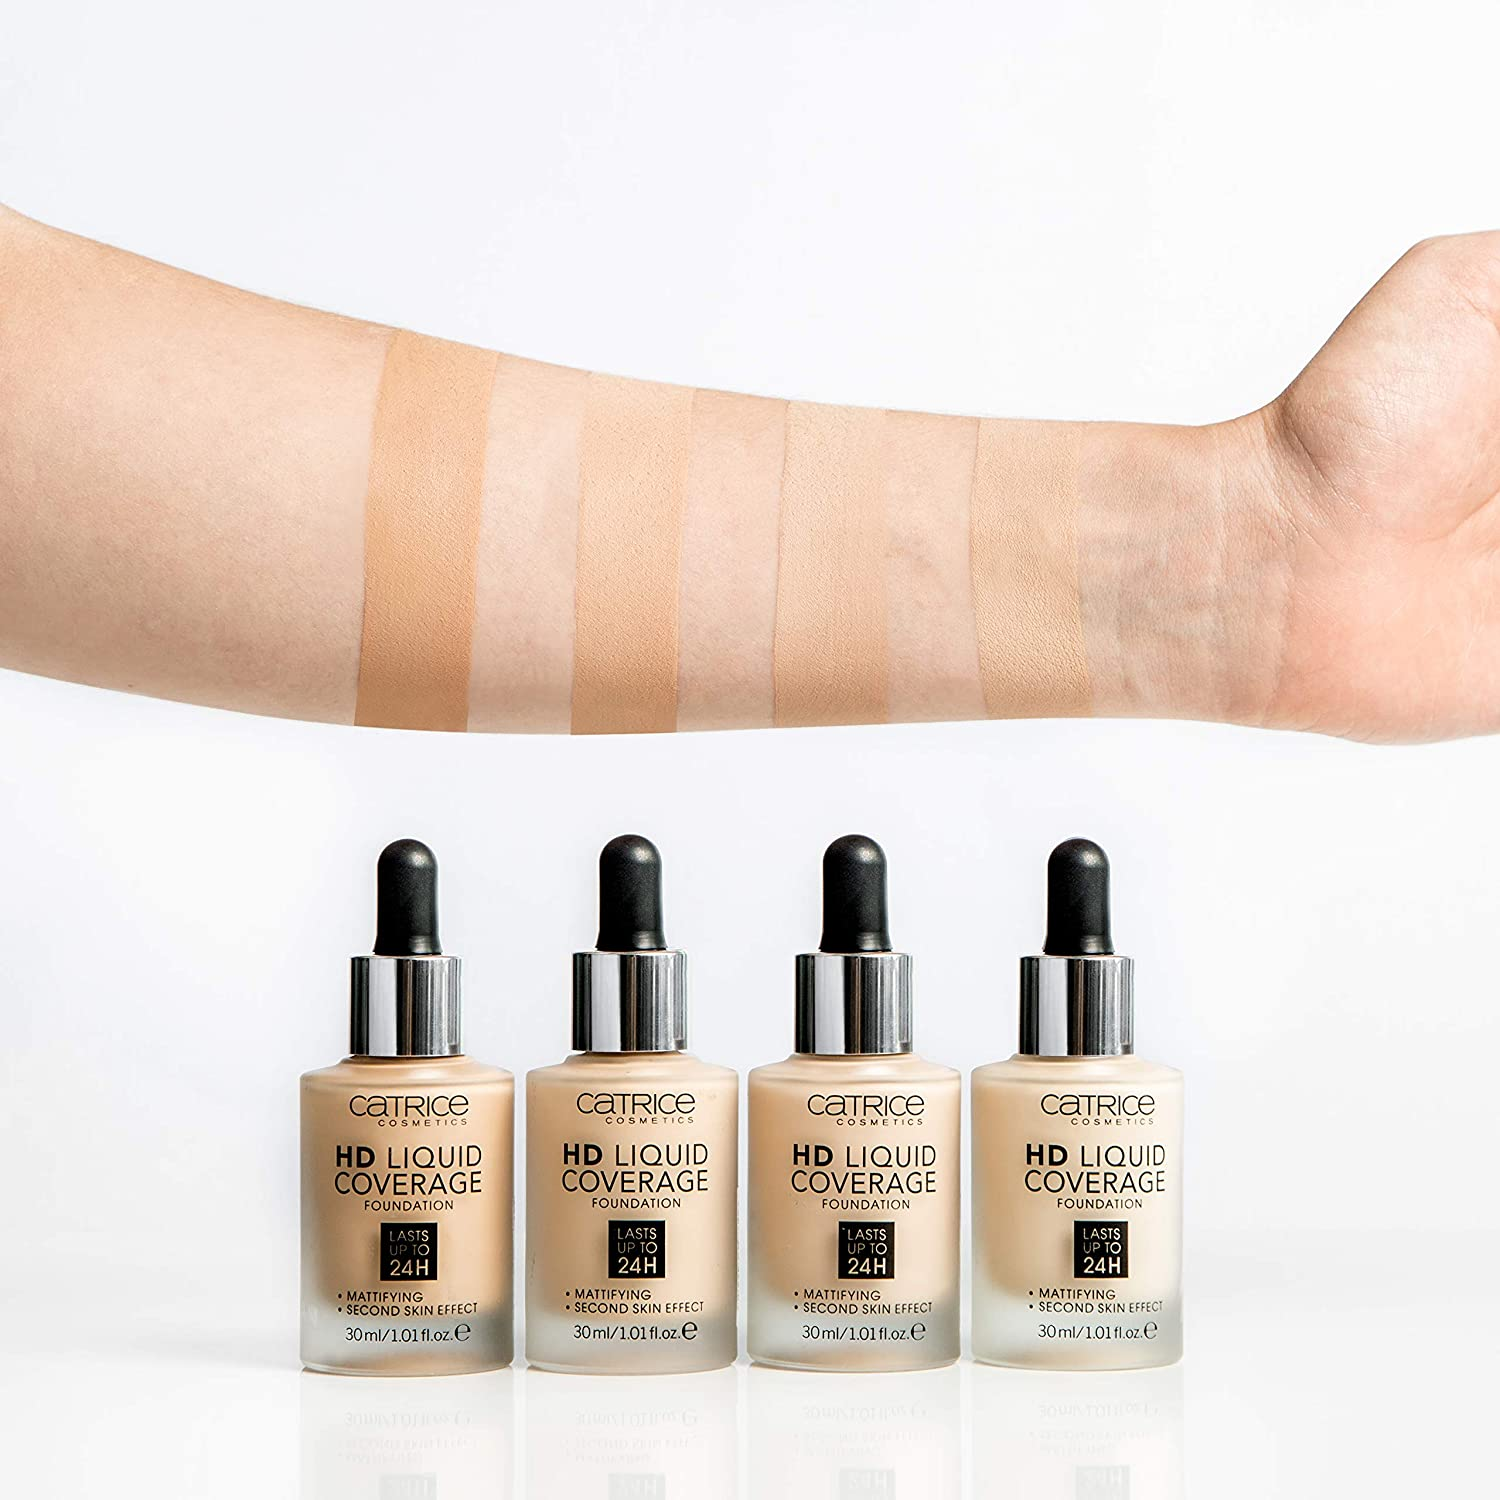 HD Liquid Coverage Foundation by Catrice Cosmetics #22